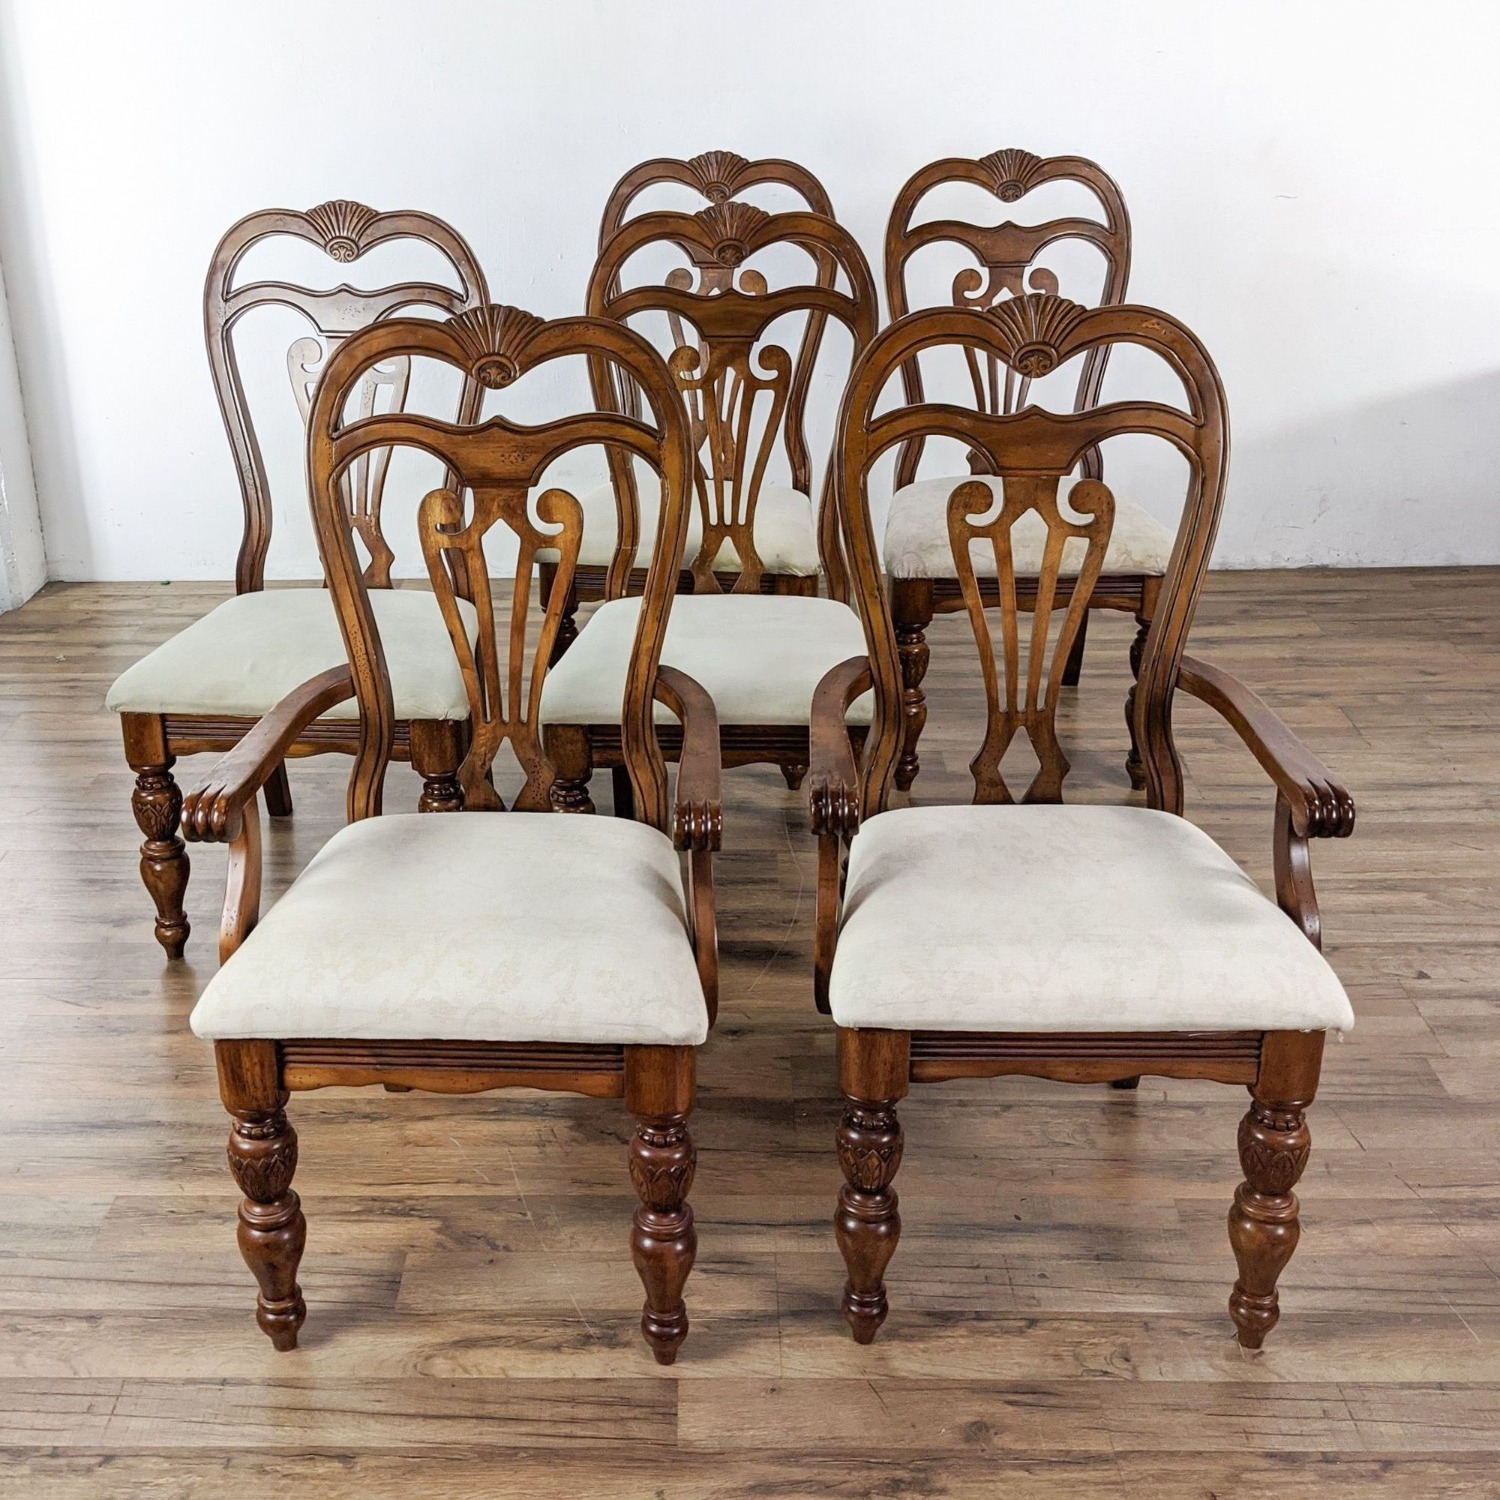 Set of 6 Wooden Dining Chairs - image-3